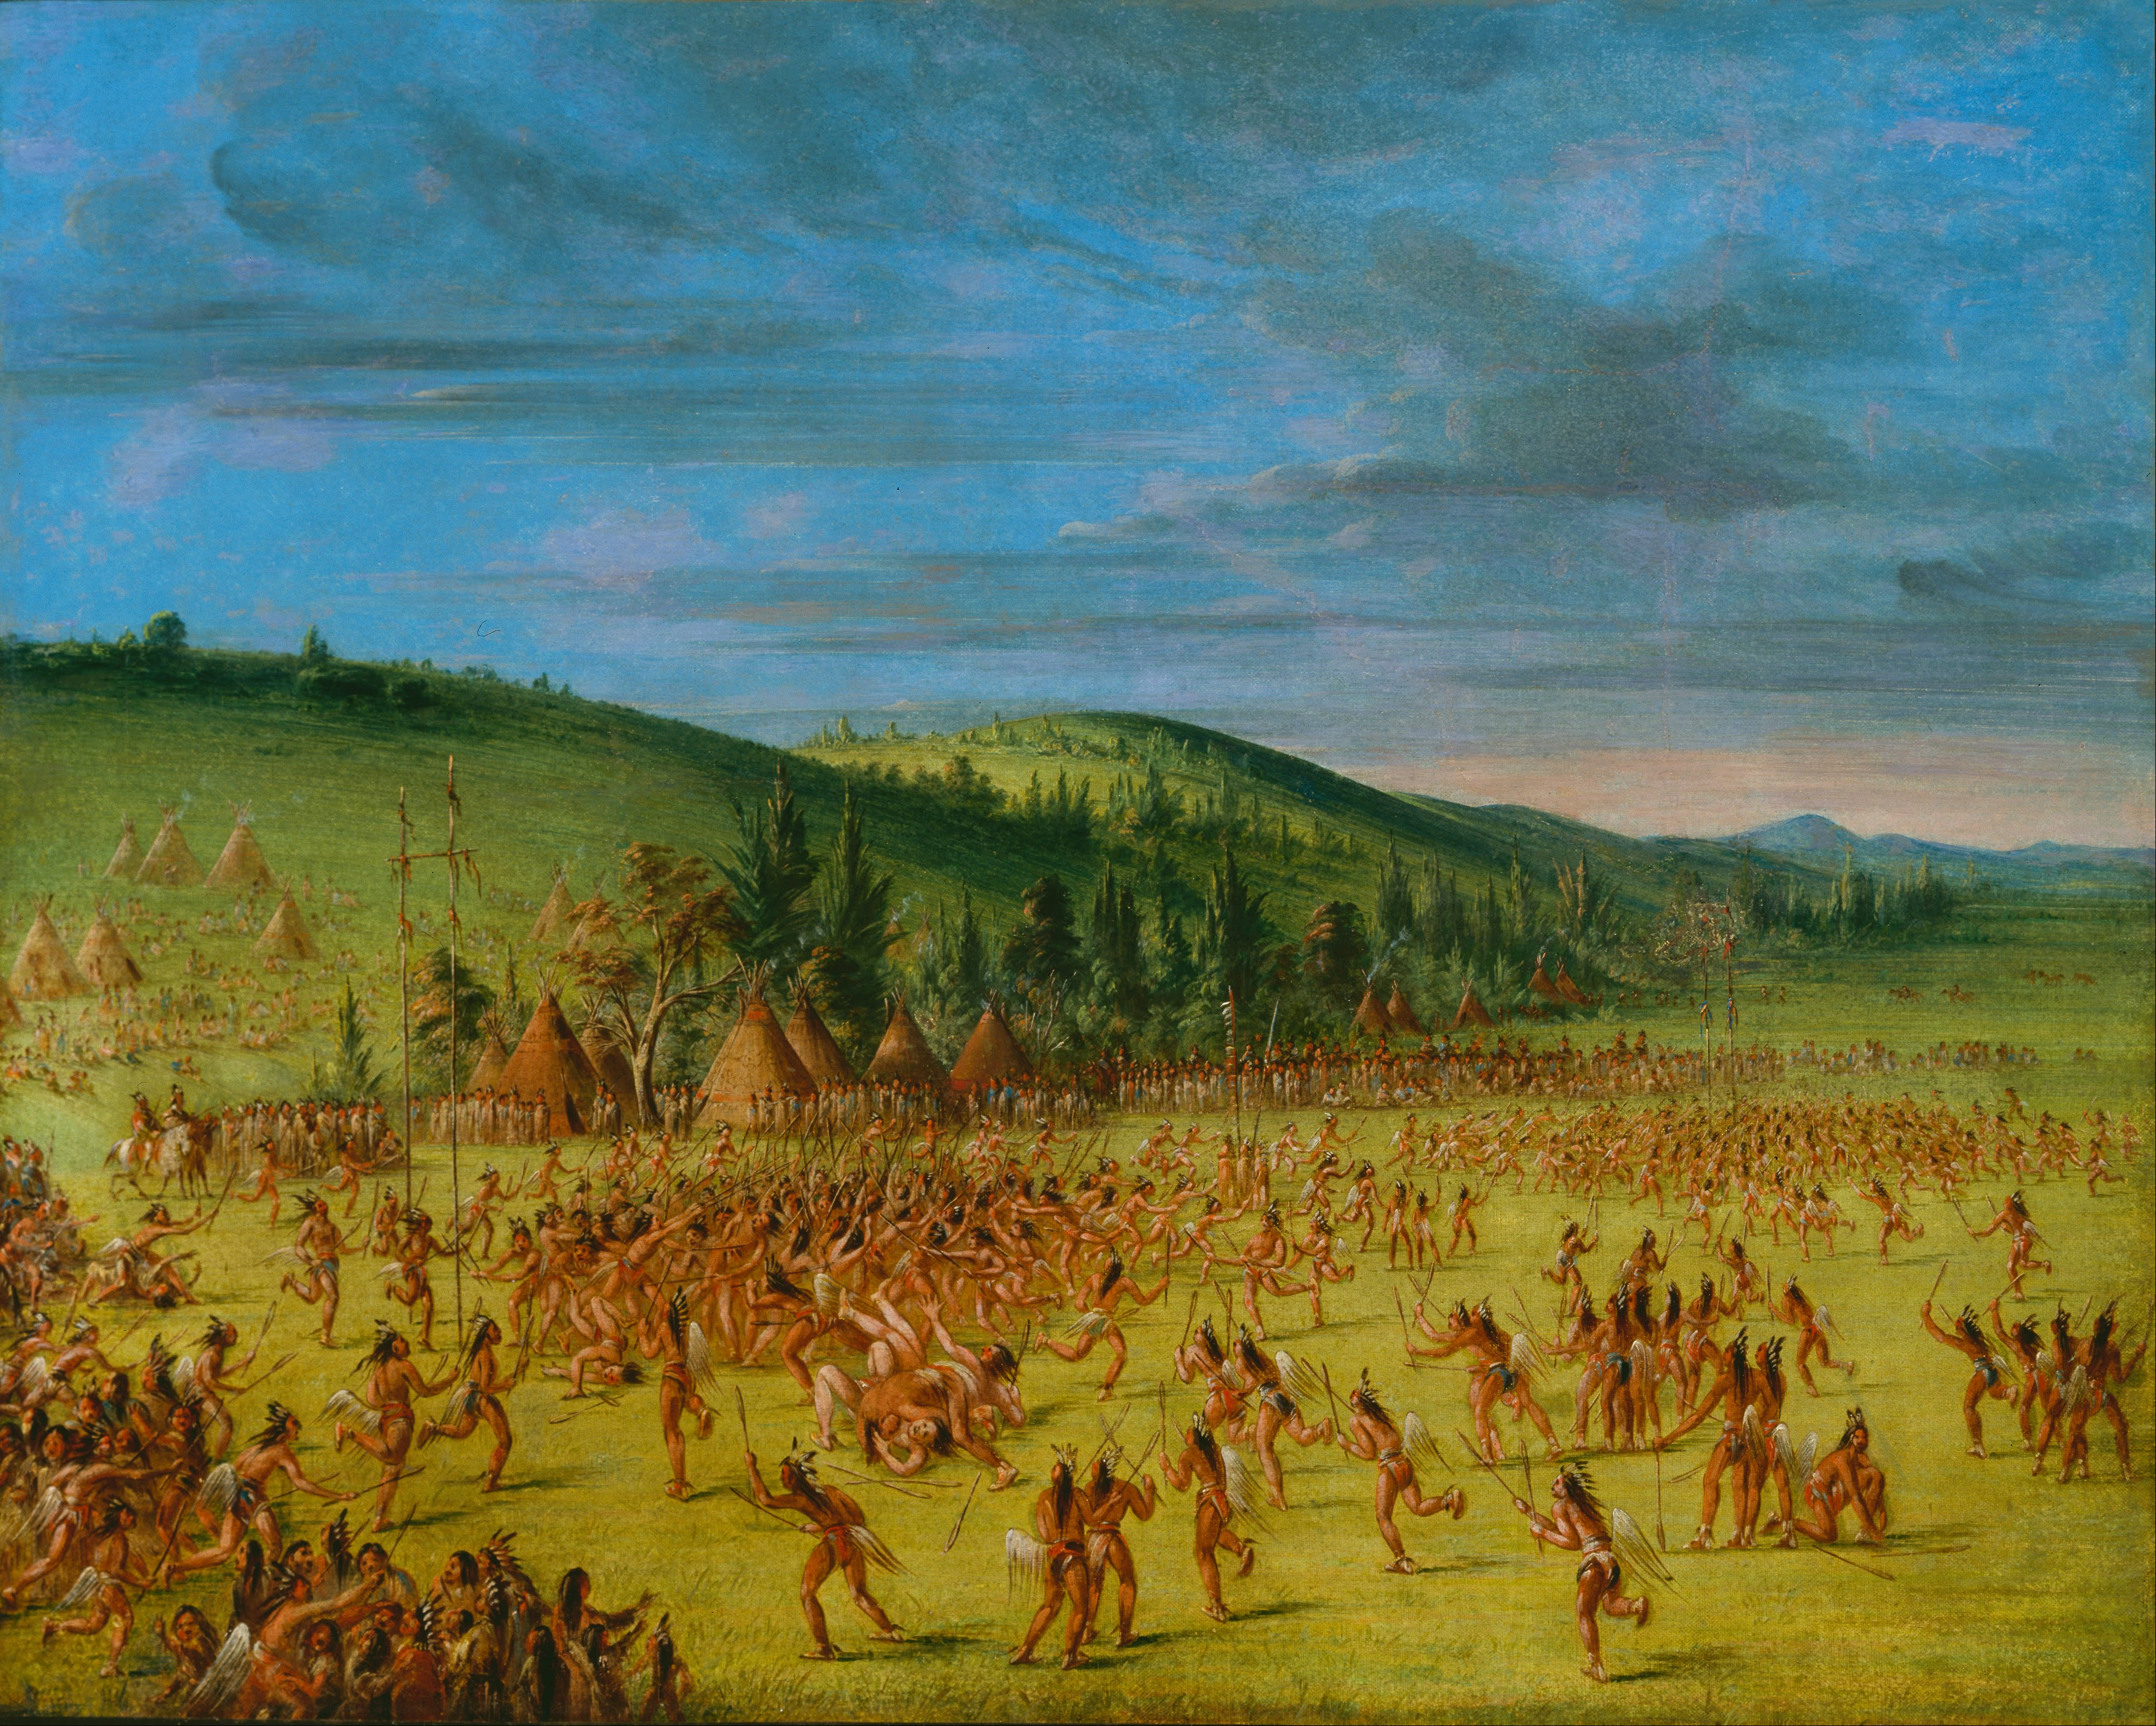 George_Catlin_-_Ball-play_of_the_Choctaw--Ball_Up_-_Google_Art_Project.jpg